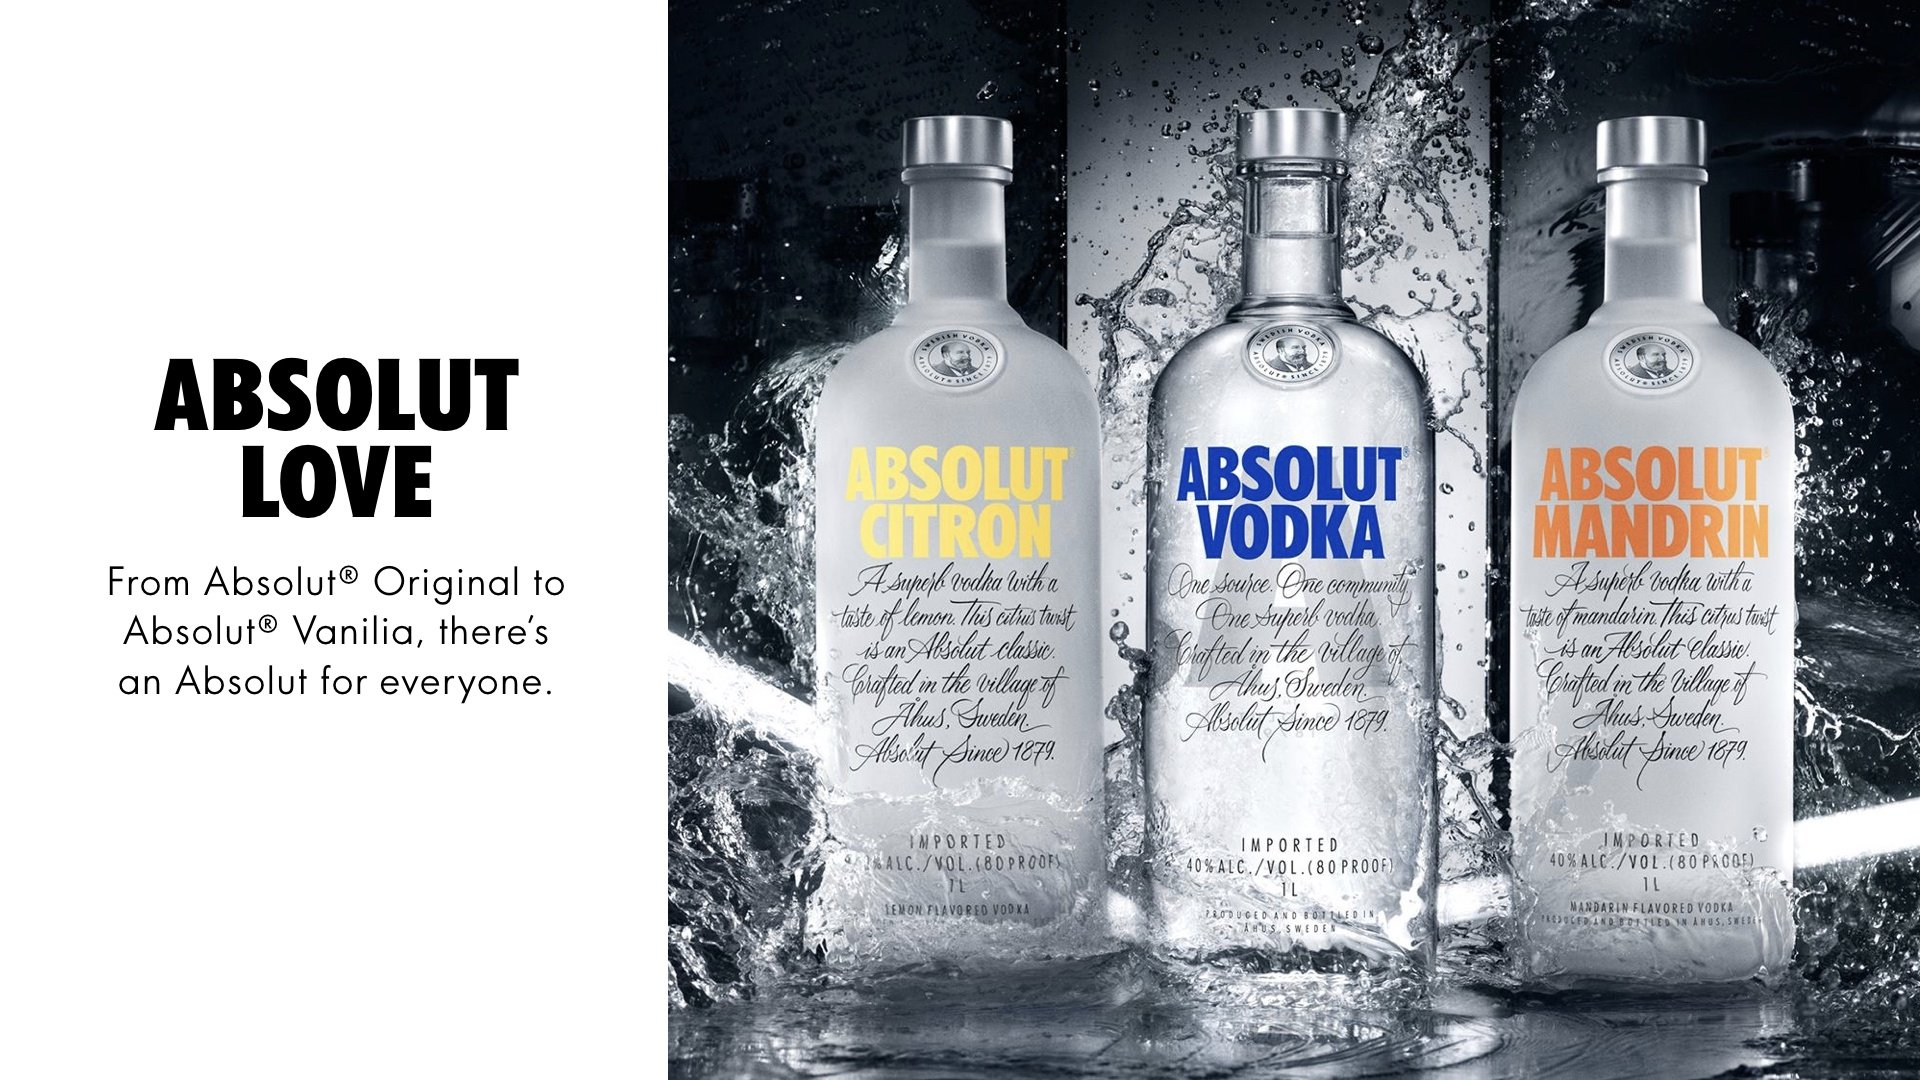 absolut vodka brand analysis When most people think of absolut, they think of vodka however, the pernod ricard-owned brand now wants people to associate its name with fine art absolut art is an online retailer with a mission to make art mainstream enough that everyone can hang a piece on their walls the business sells curated.